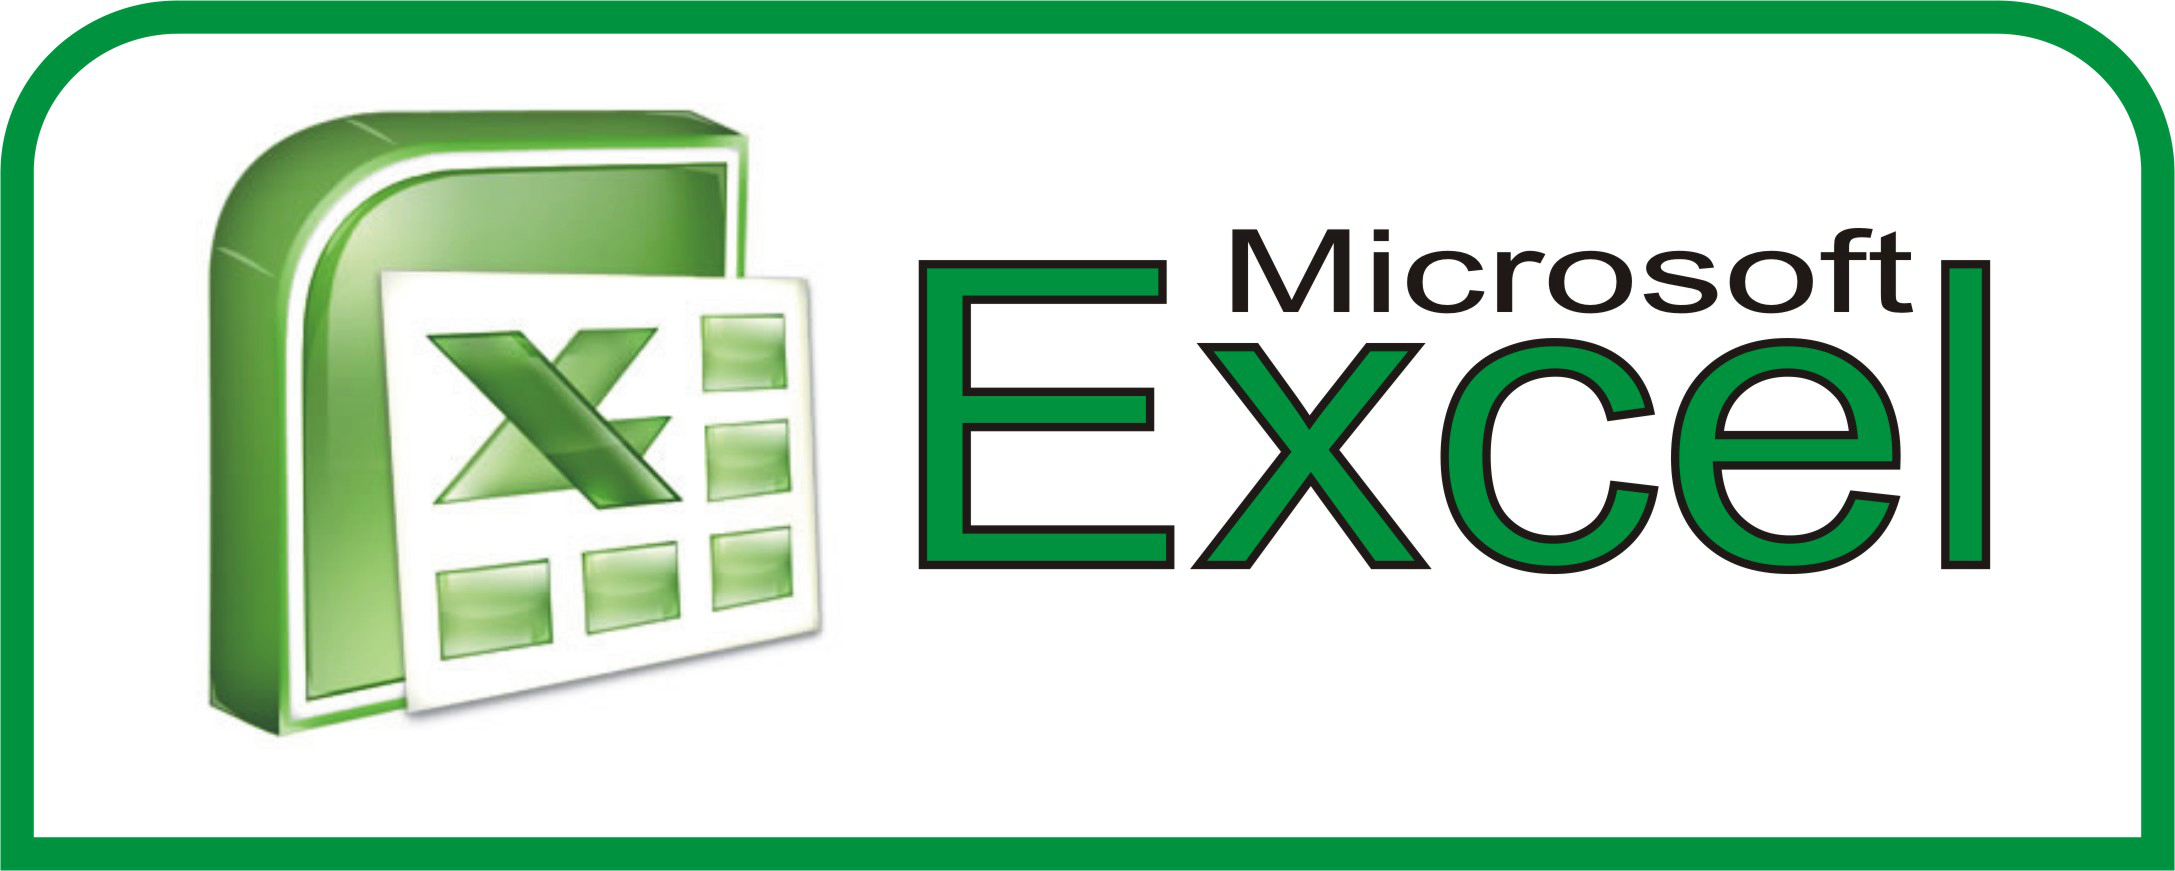 Ediblewildsus  Remarkable  Excel Shortcuts You Probably Didnt Know About  Techdissected With Fascinating Replace Text In Excel Besides Word To Excel Converter Furthermore Excel  Download With Alluring How To Separate Data In Excel Also Excel Formula To Find Duplicates In Addition Compound Interest Calculator Excel And Excel Ortho As Well As How To Do An If Function In Excel Additionally Excel Slope From Techdissectedcom With Ediblewildsus  Fascinating  Excel Shortcuts You Probably Didnt Know About  Techdissected With Alluring Replace Text In Excel Besides Word To Excel Converter Furthermore Excel  Download And Remarkable How To Separate Data In Excel Also Excel Formula To Find Duplicates In Addition Compound Interest Calculator Excel From Techdissectedcom